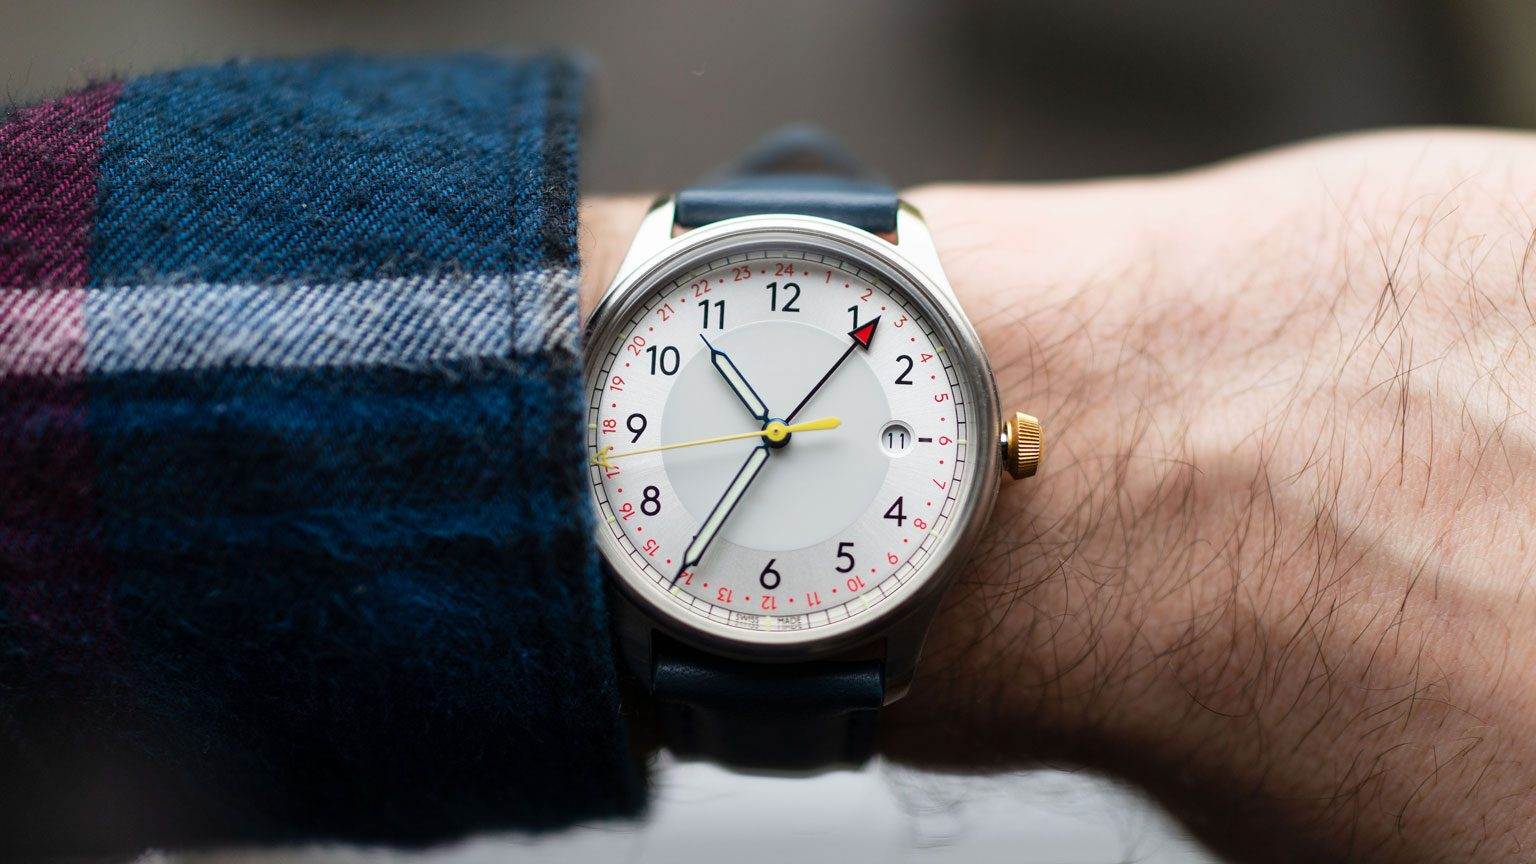 What with White Dial and leather strap